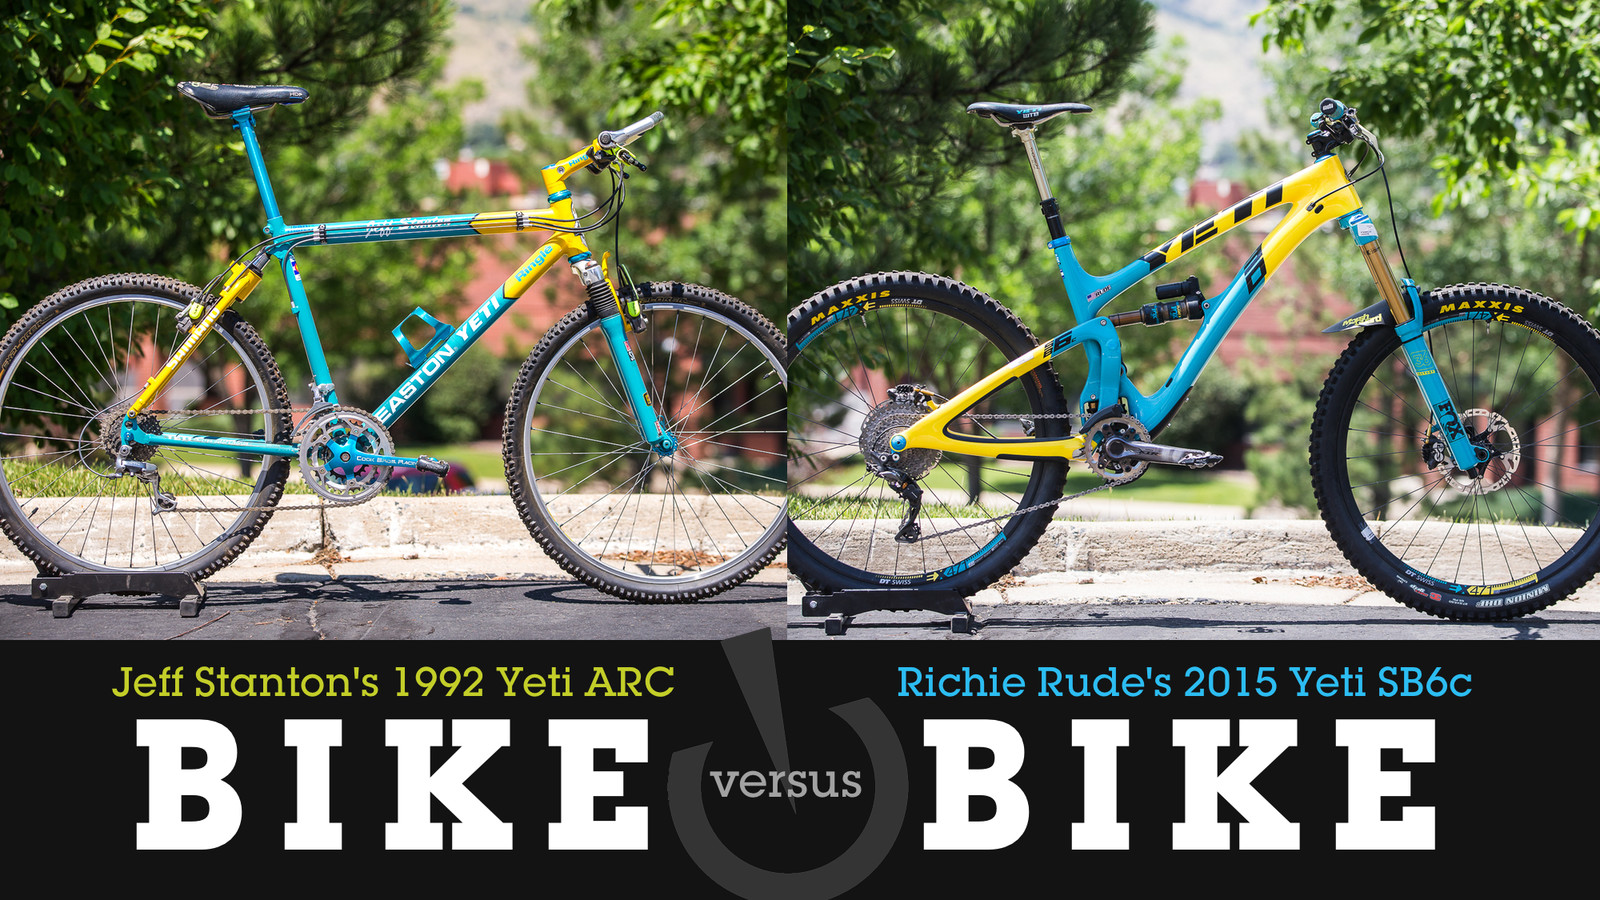 Bike vs. Bike - 1992 Yeti ARC vs. 2015 Yeti SB6c